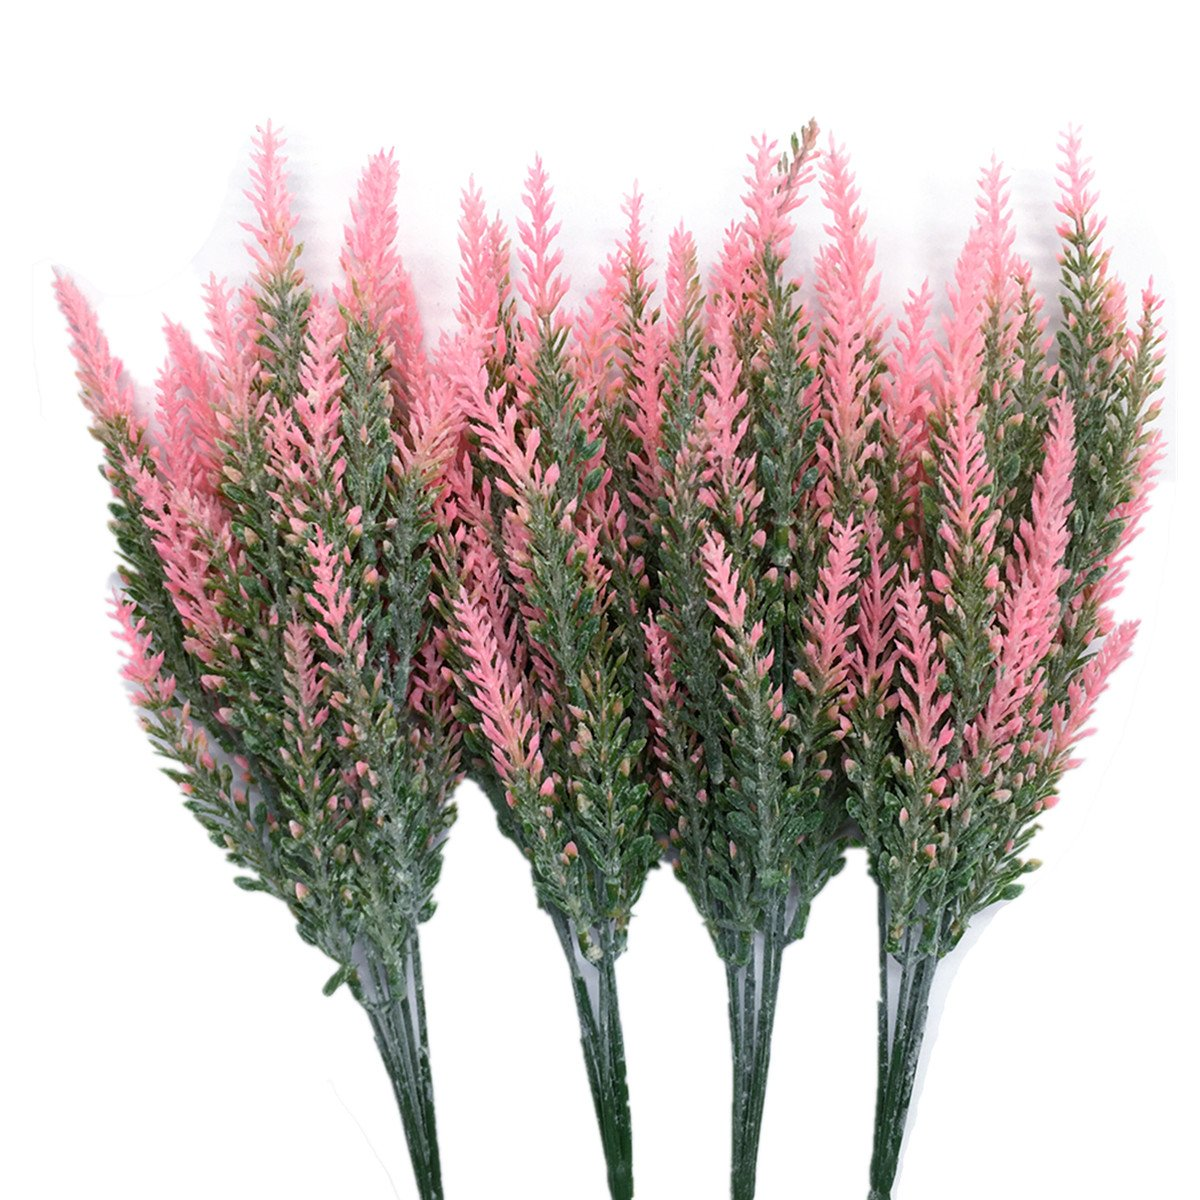 CATTREE-Artificial-Lavender-Plastic-Plants-Fake-Flowers-Bouquet-Home-Bridal-Wedding-Office-Party-Garden-Balcony-Indoor-Outdoor-DIY-Centerpieces-Arrangements-Simulation-Craft-Decoration-Pink-4pcs